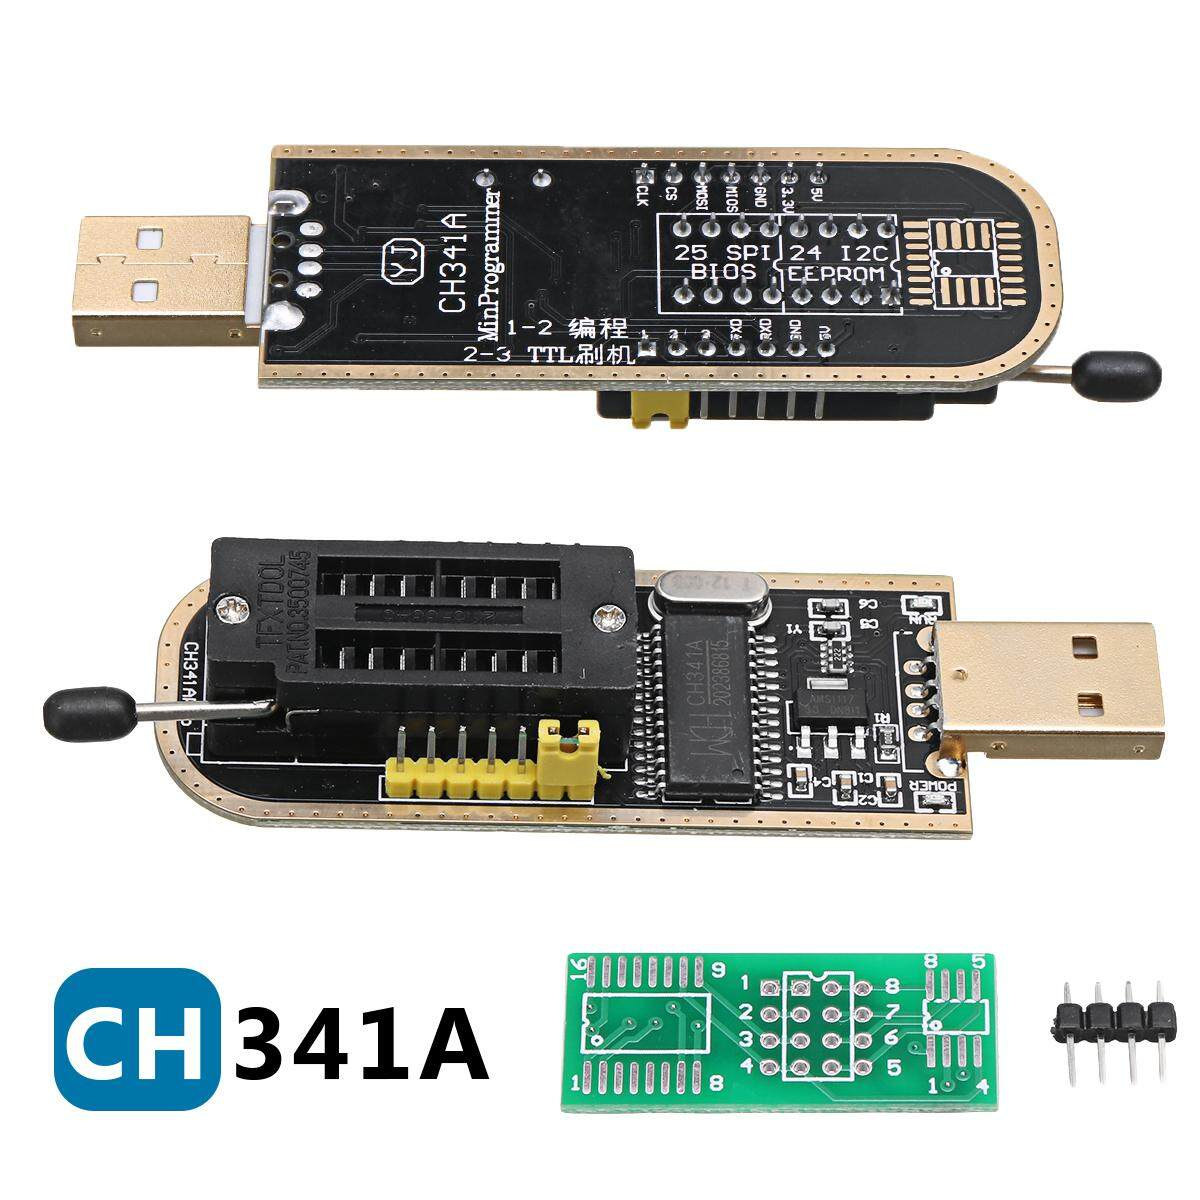 Usb โปรแกรมเมอร์ Ch341a Series Burner Chip 24 Eeprom Bios Writer 25 Spi Flash By Autoleader.